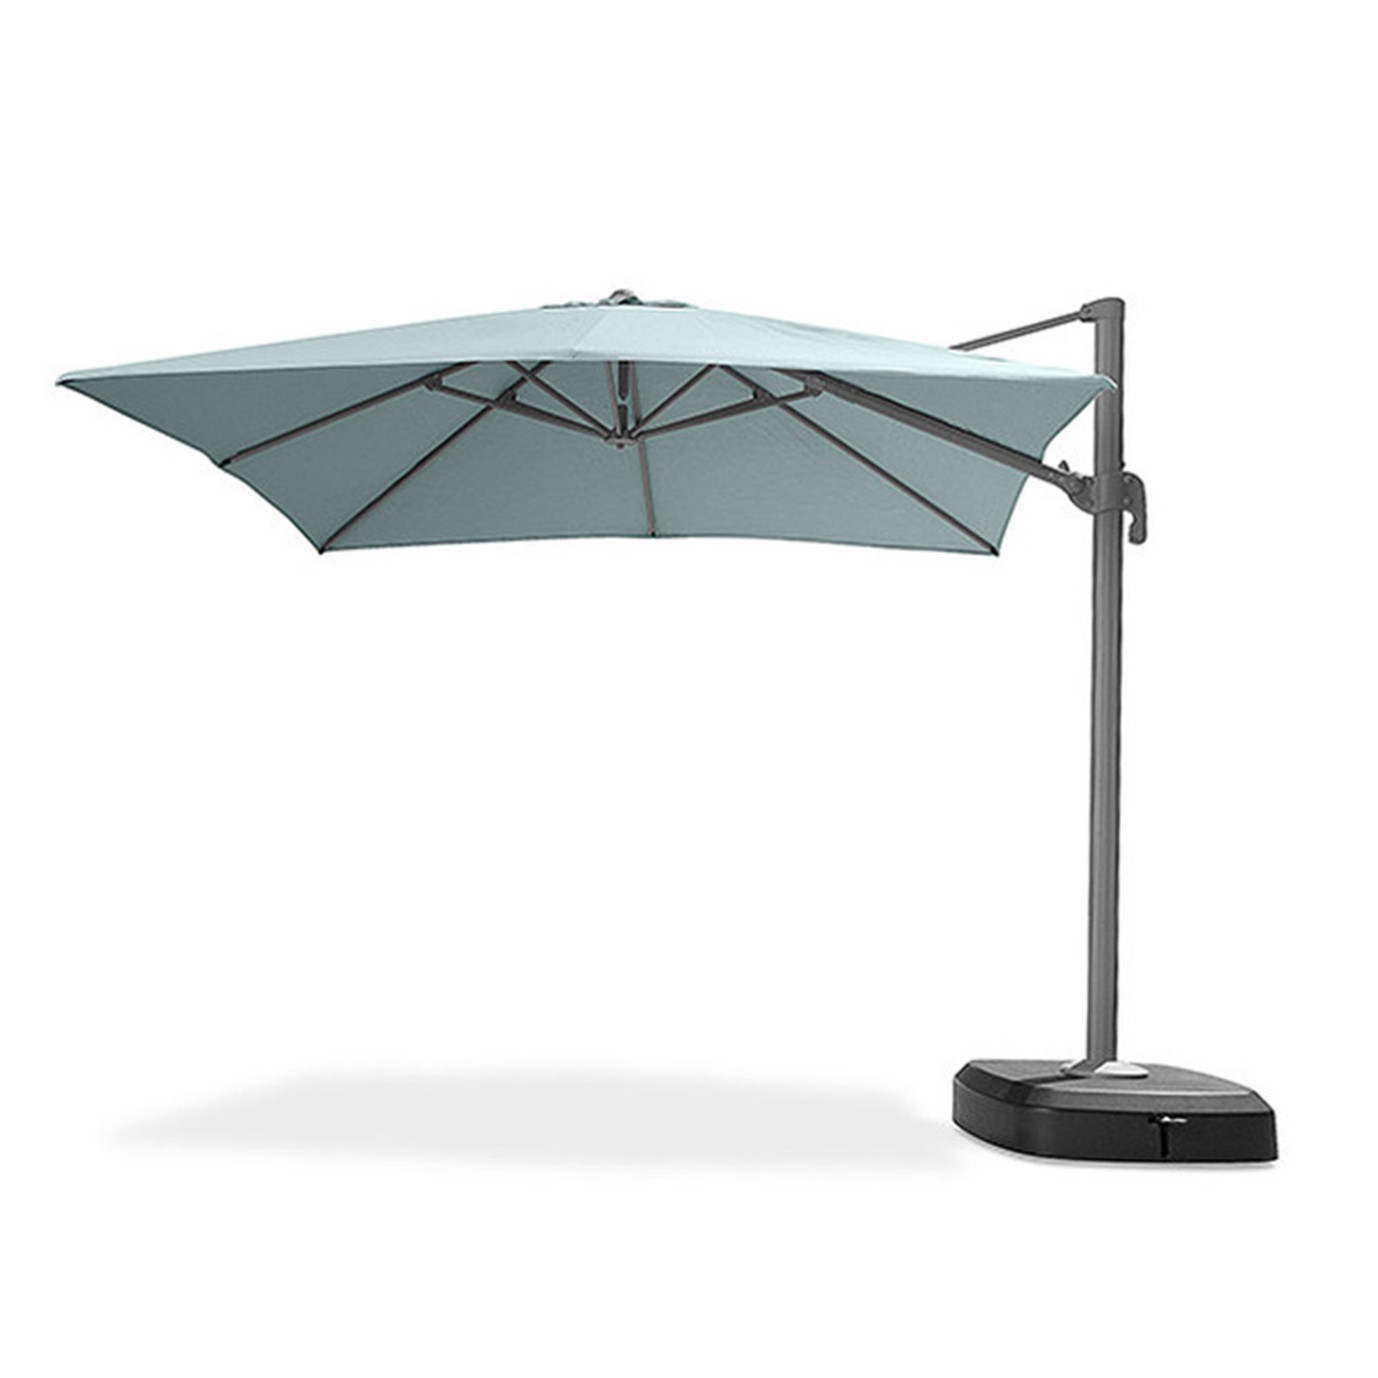 Portofino® Comfort 10ft Resort Umbrella - Spa Blue